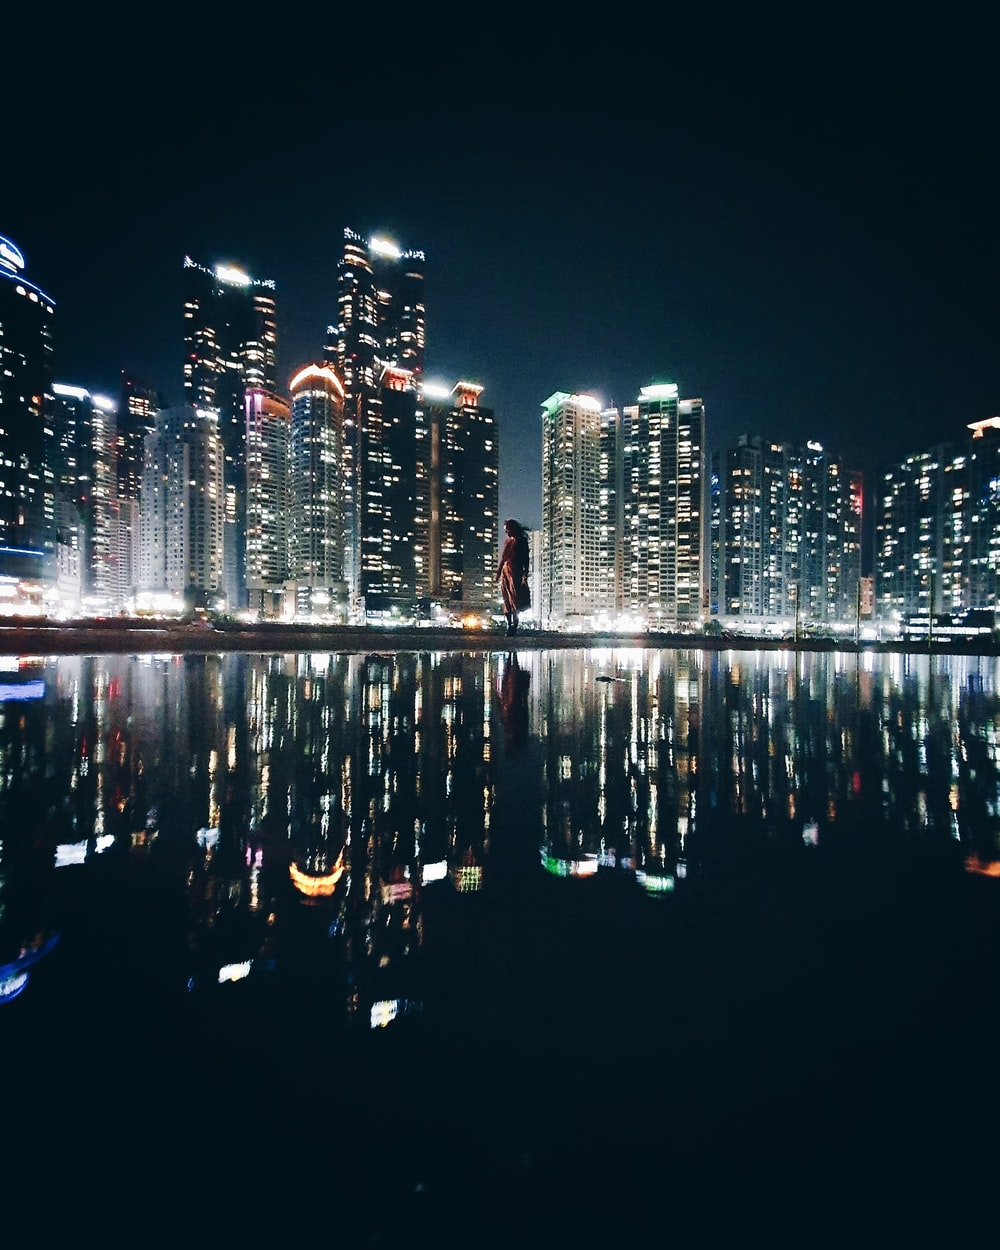 reflection of high-rise buildings on body of water during nighttime